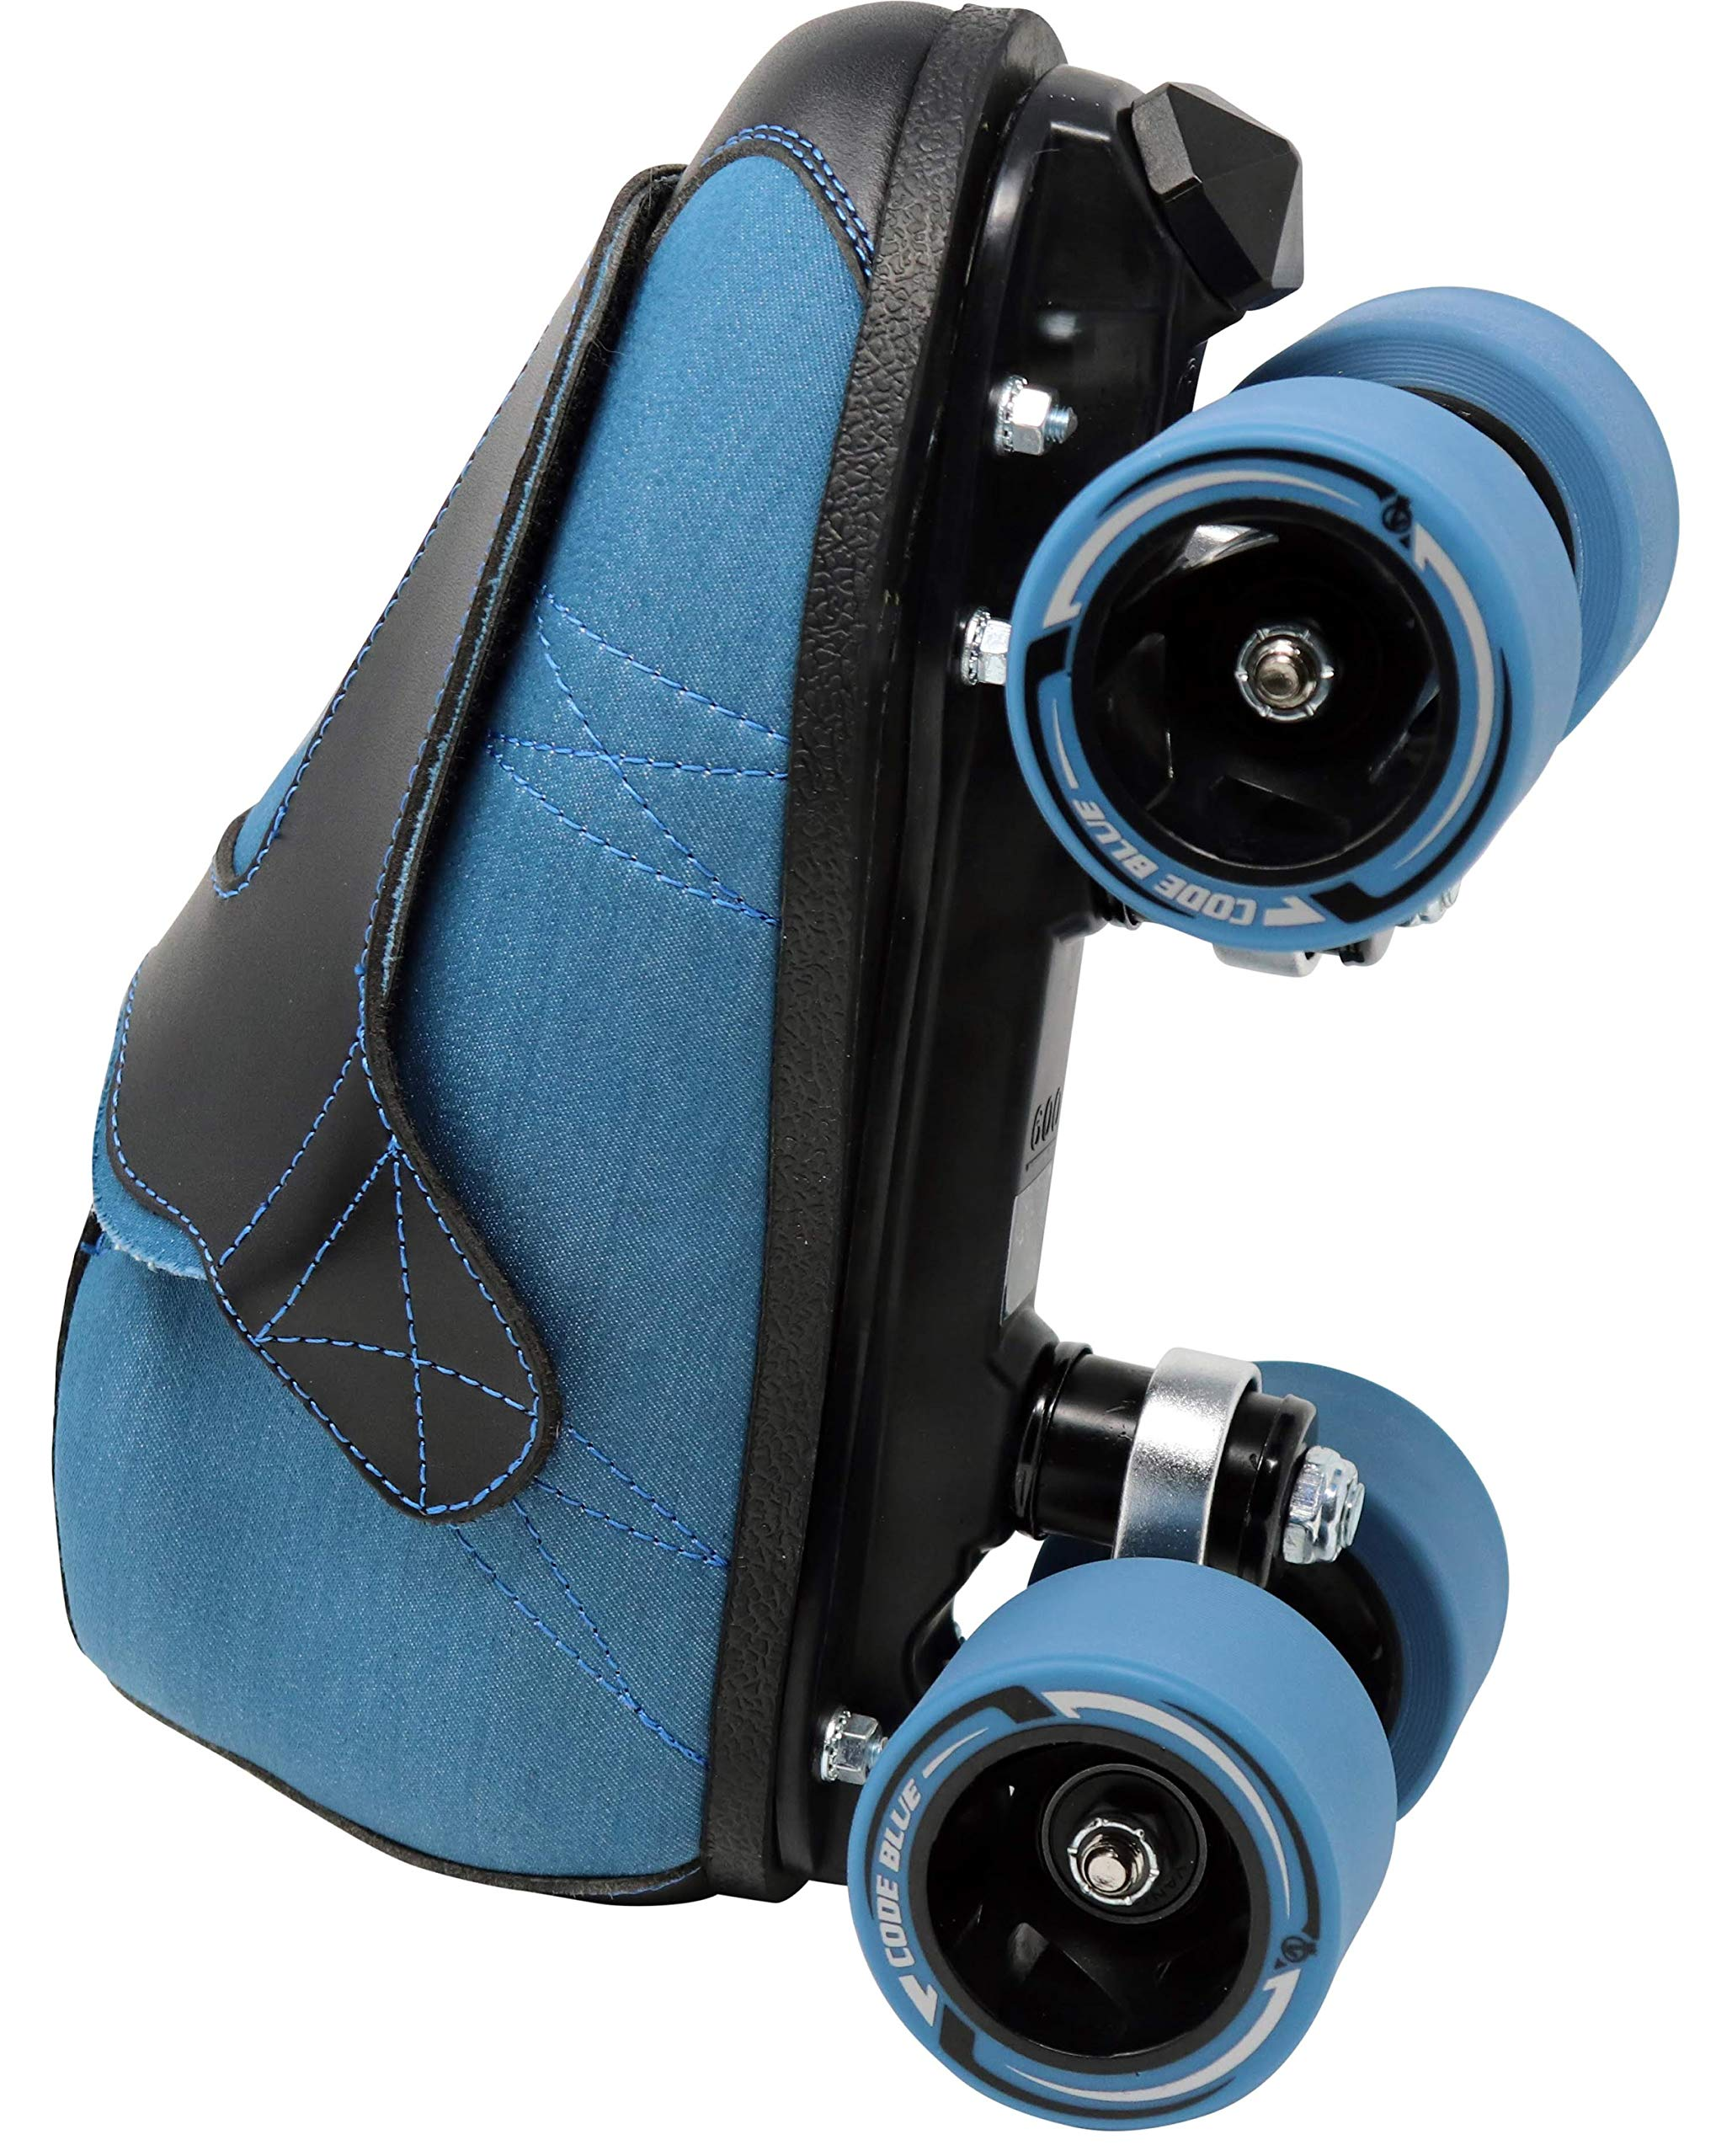 VNLA Code Blue Jam Skate - Mens & Womens Speed Skates - Quad Skates for Women & Men - Adjustable Roller Skate/Rollerskates - Outdoor & Indoor Adult Quad Skate - Kid/Kids Roller Skates (Size 10) by VNLA (Image #5)